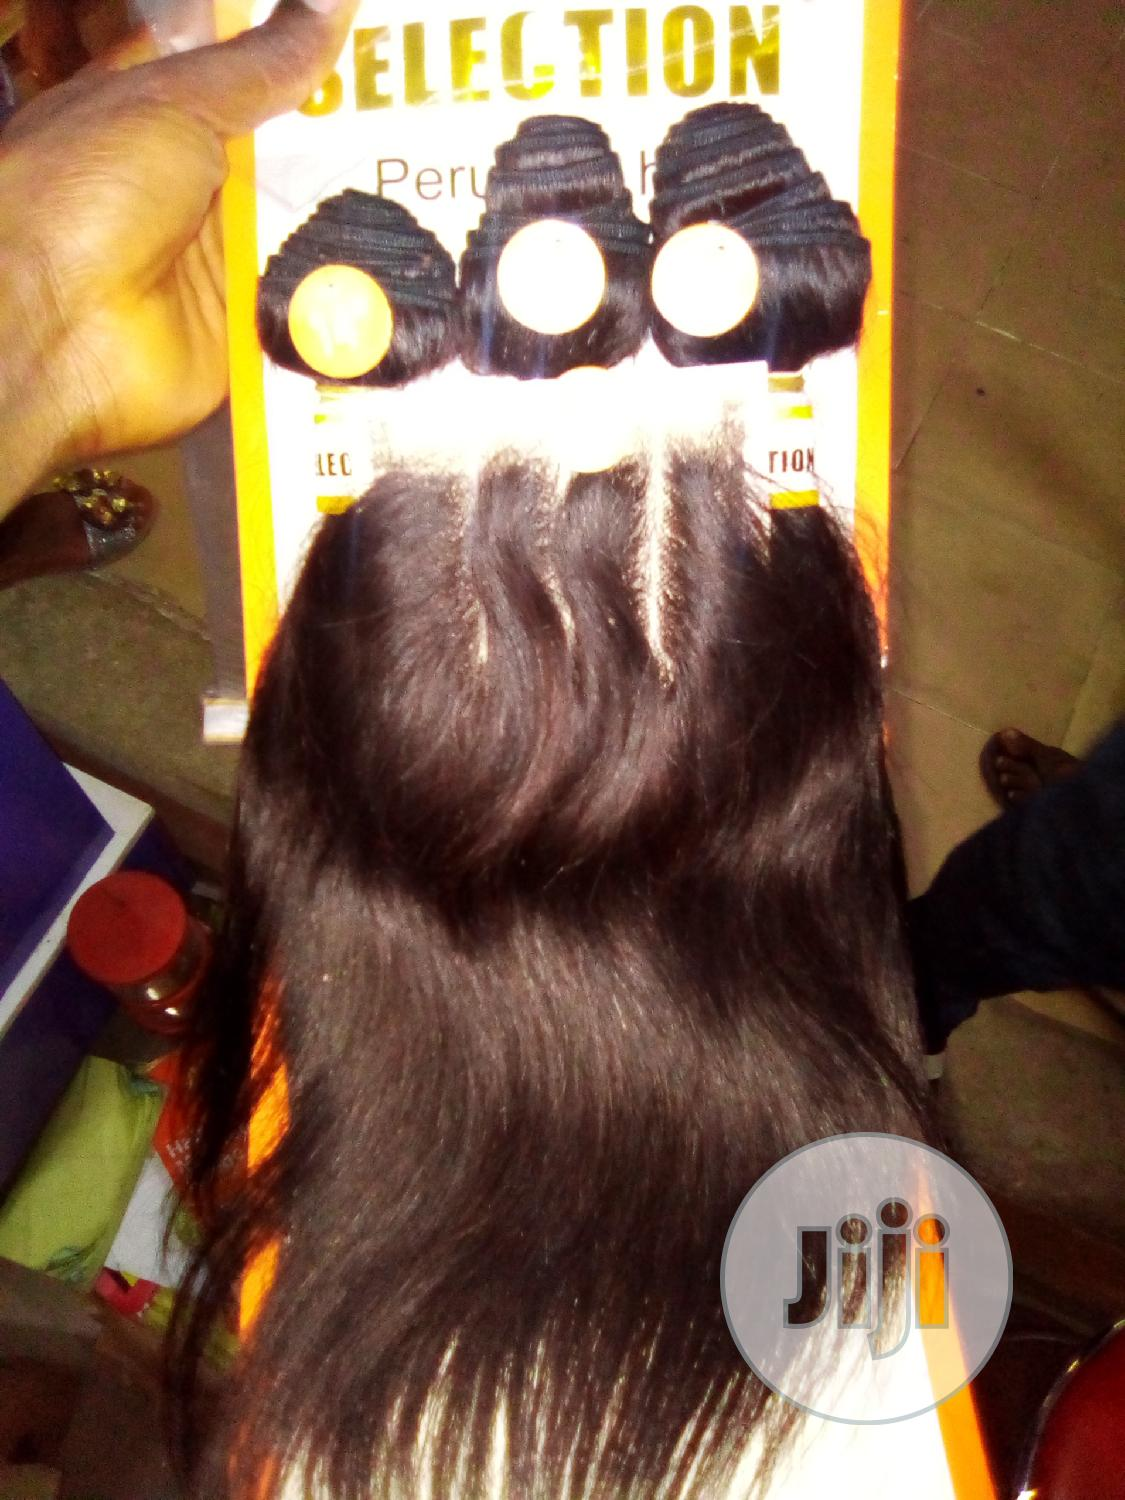 Archive: Hi Selection Peruvian Hair 14inches With Full Closure